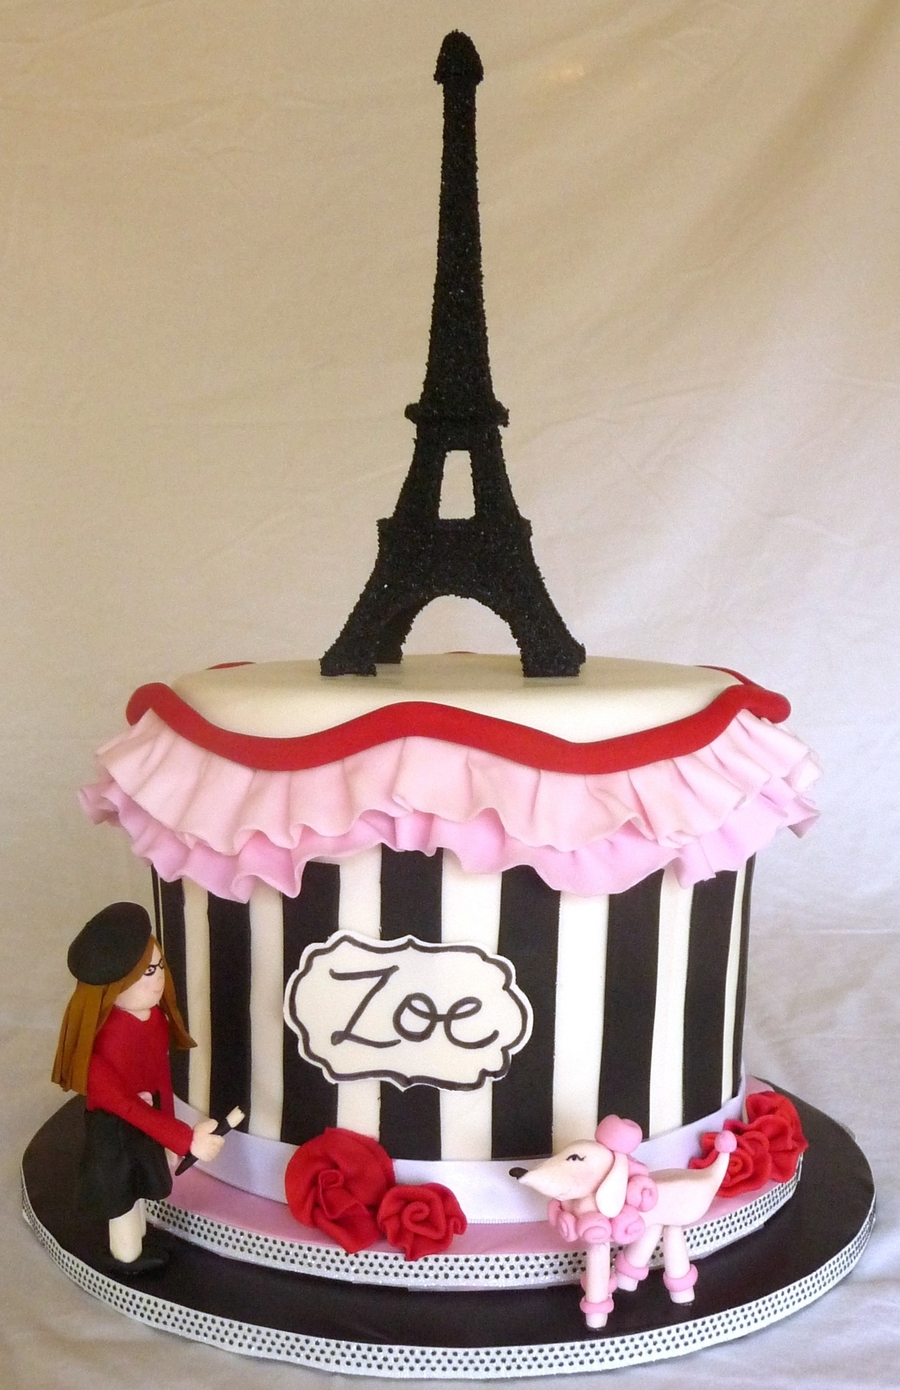 Cake Name Art : Paris-Themed Cake - CakeCentral.com